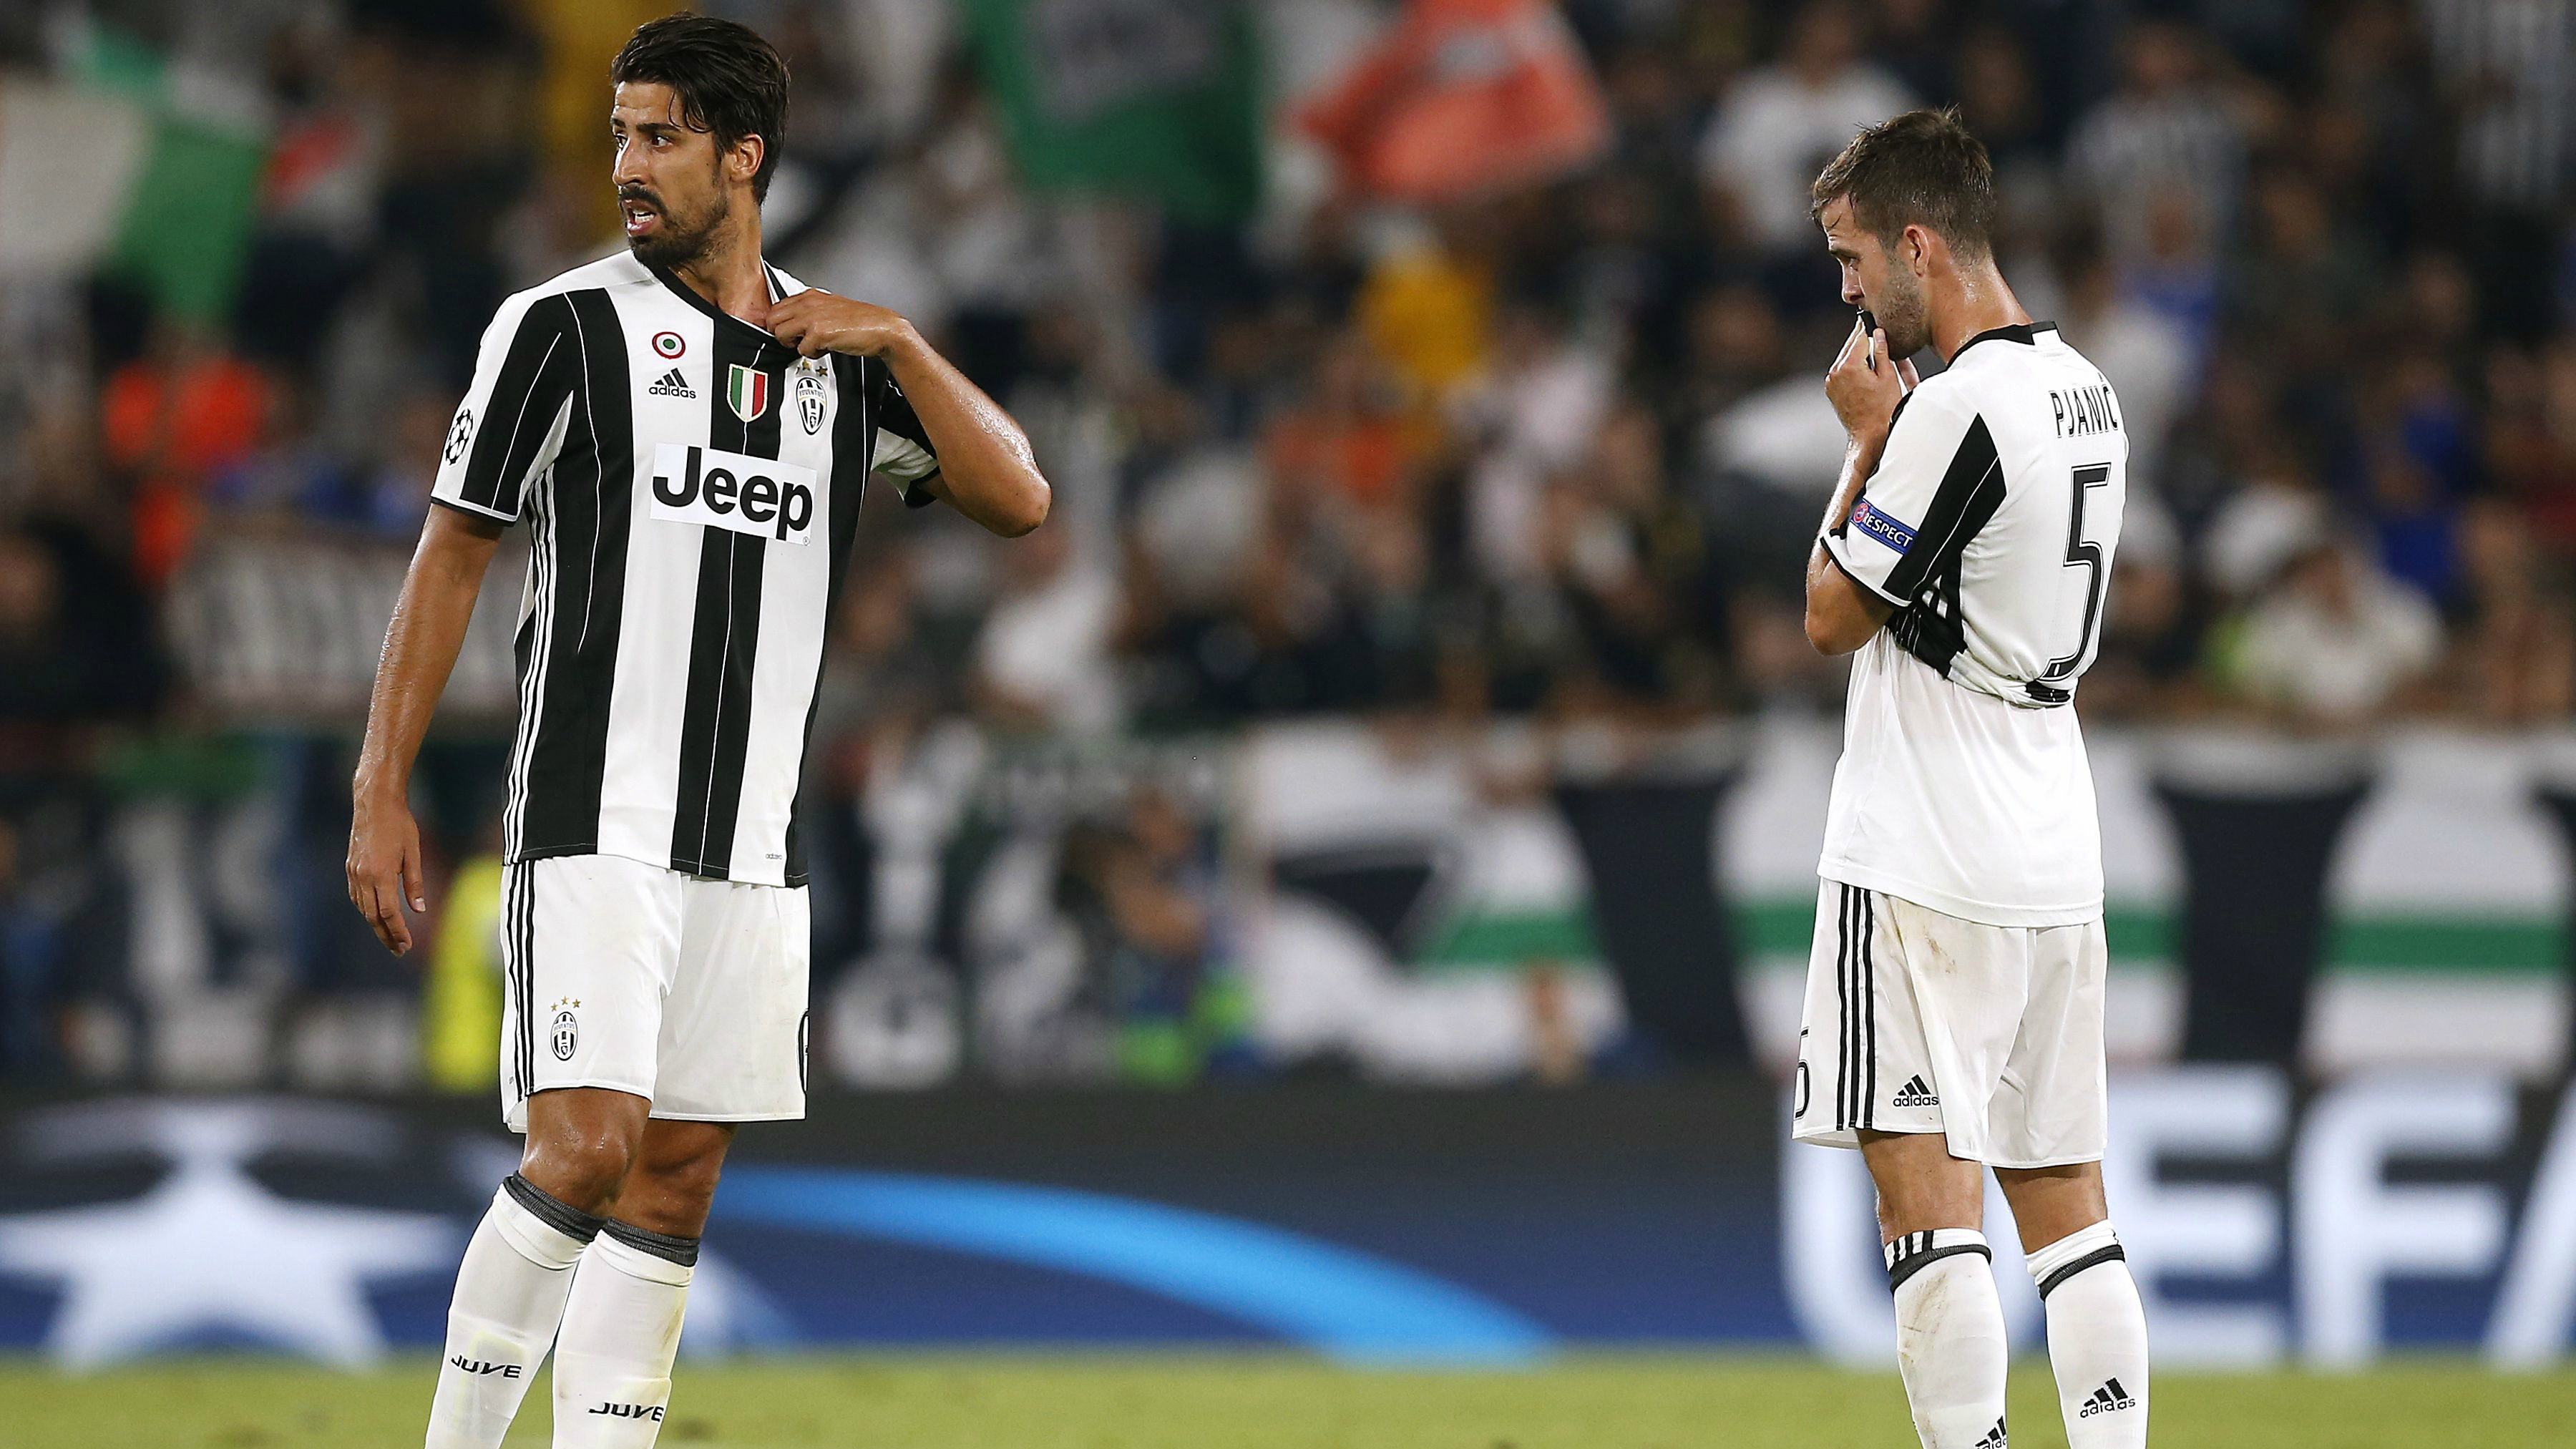 Juventus have a big problem without Claudio Marchisio ... again